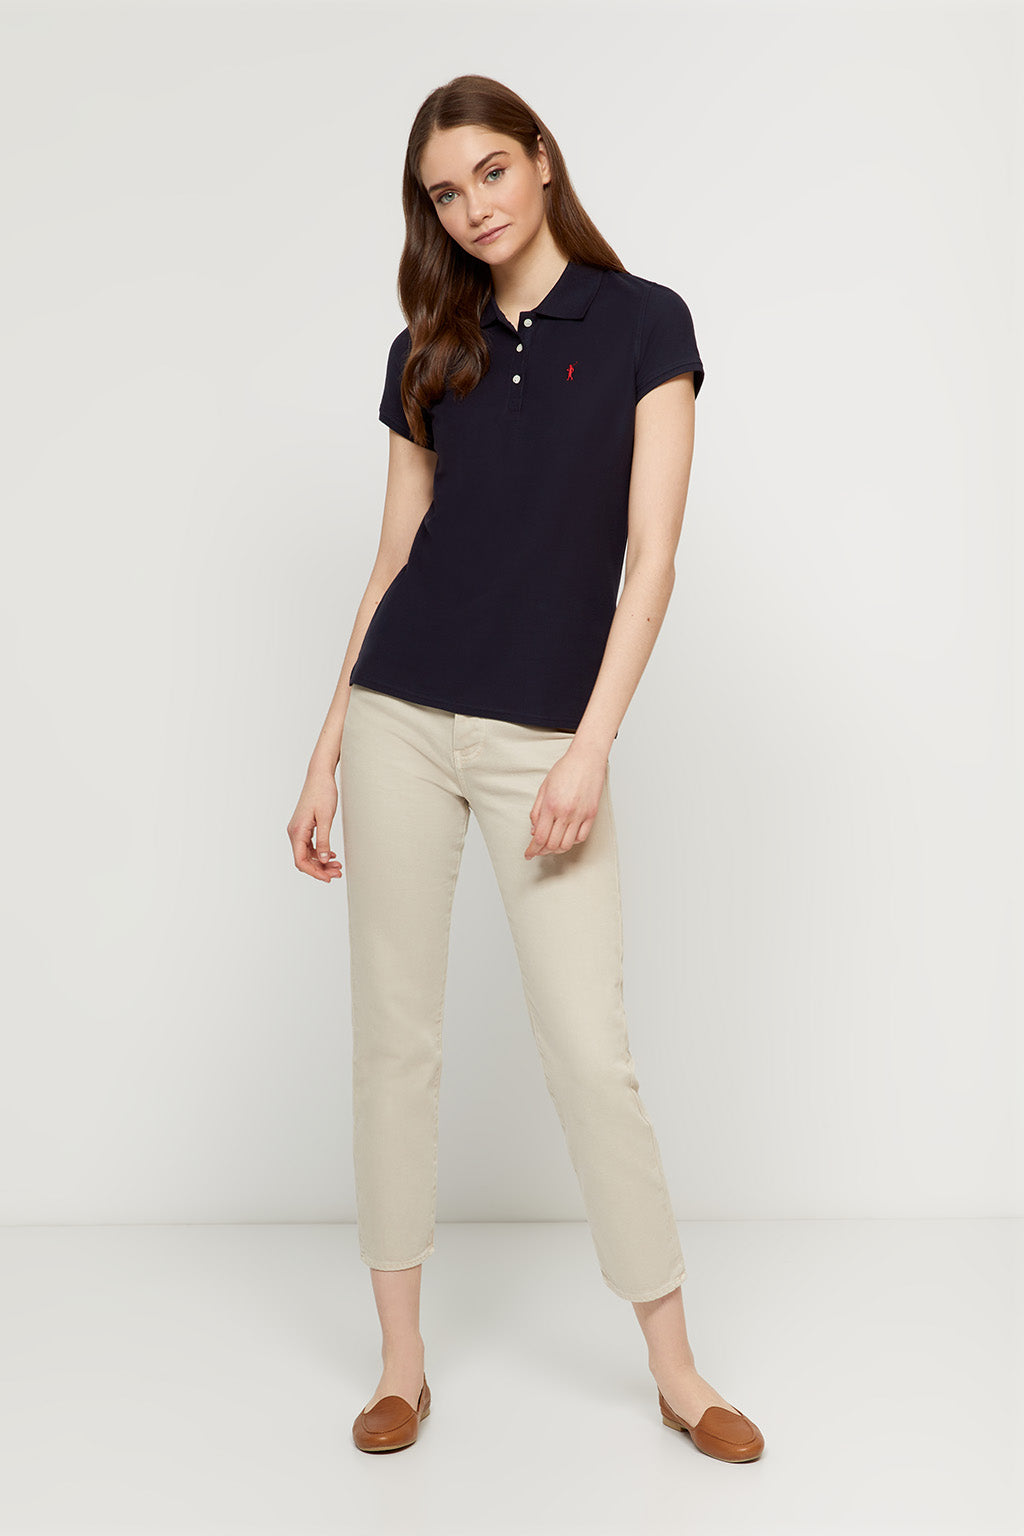 Navy blue polo shirt with embroidered logo